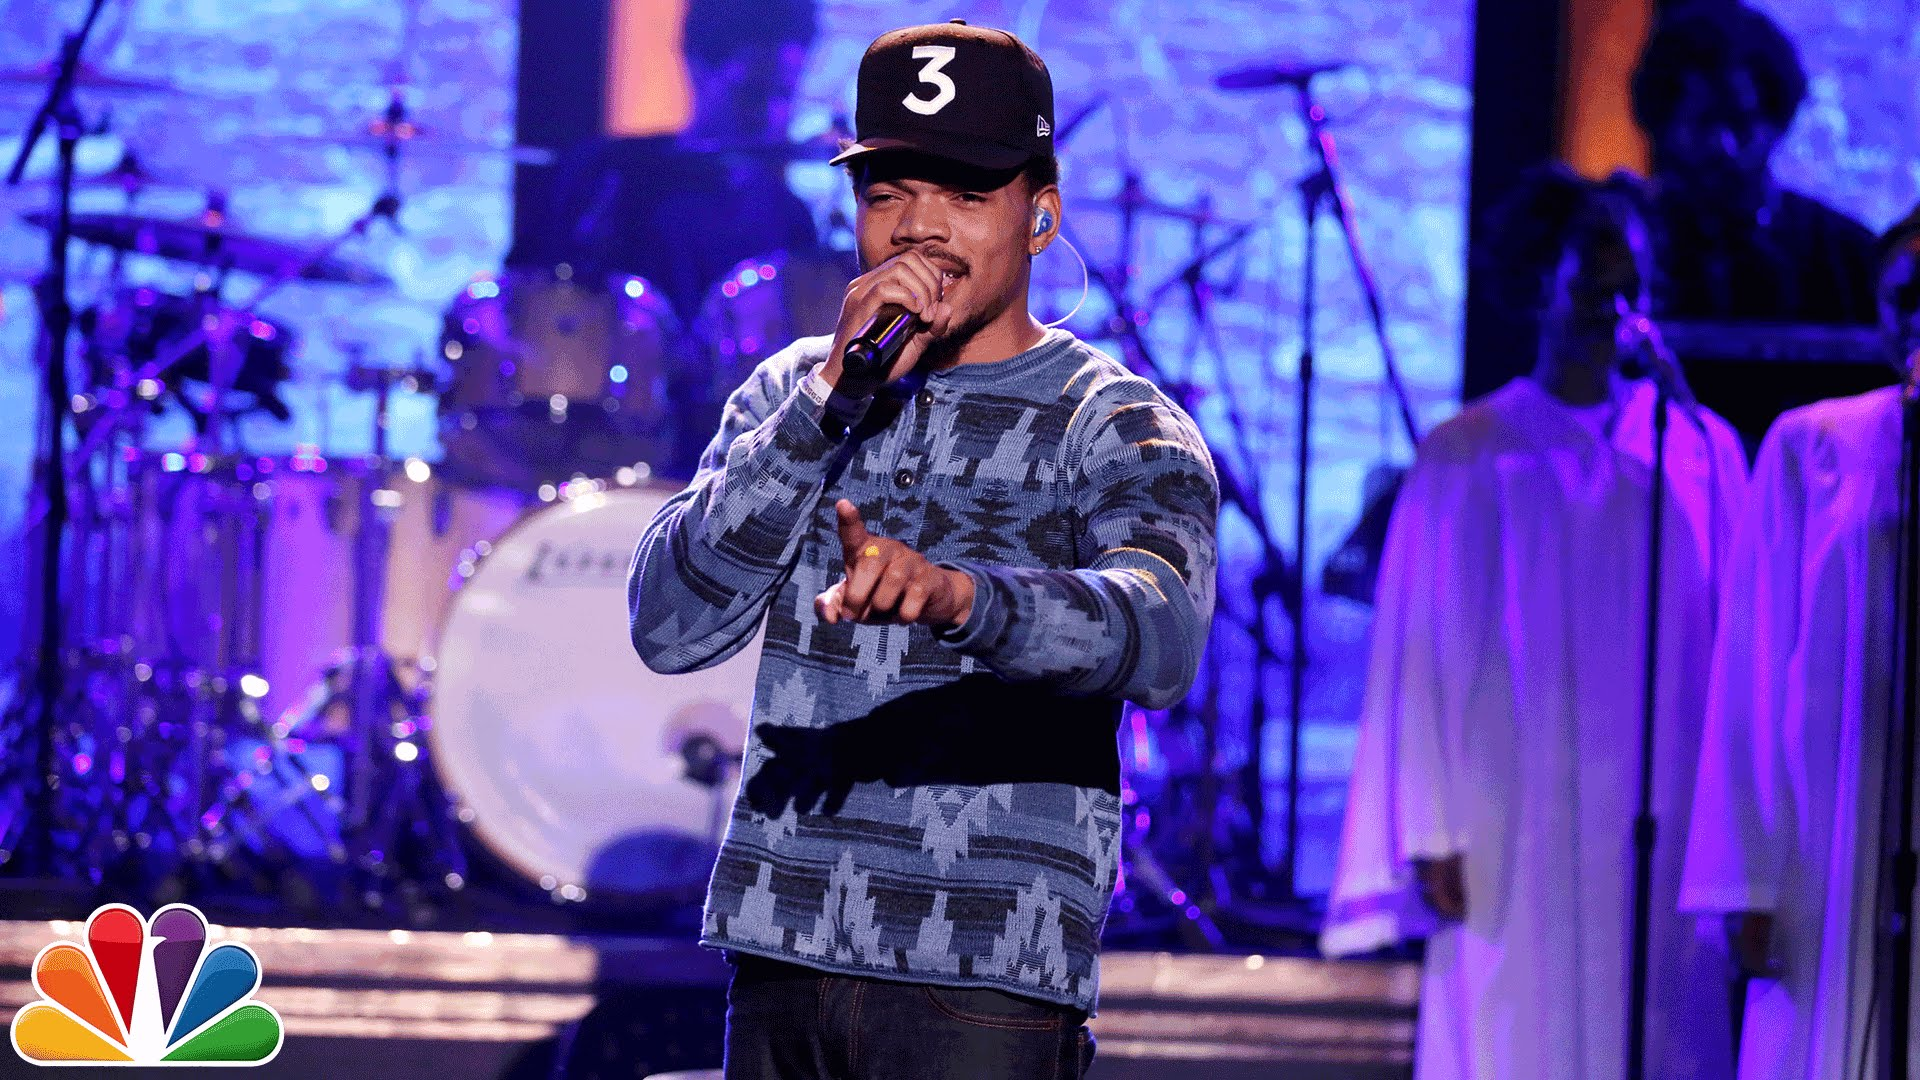 The coloring book chance the rapper itunes - The Coloring Book Chance The Rapper Itunes 71